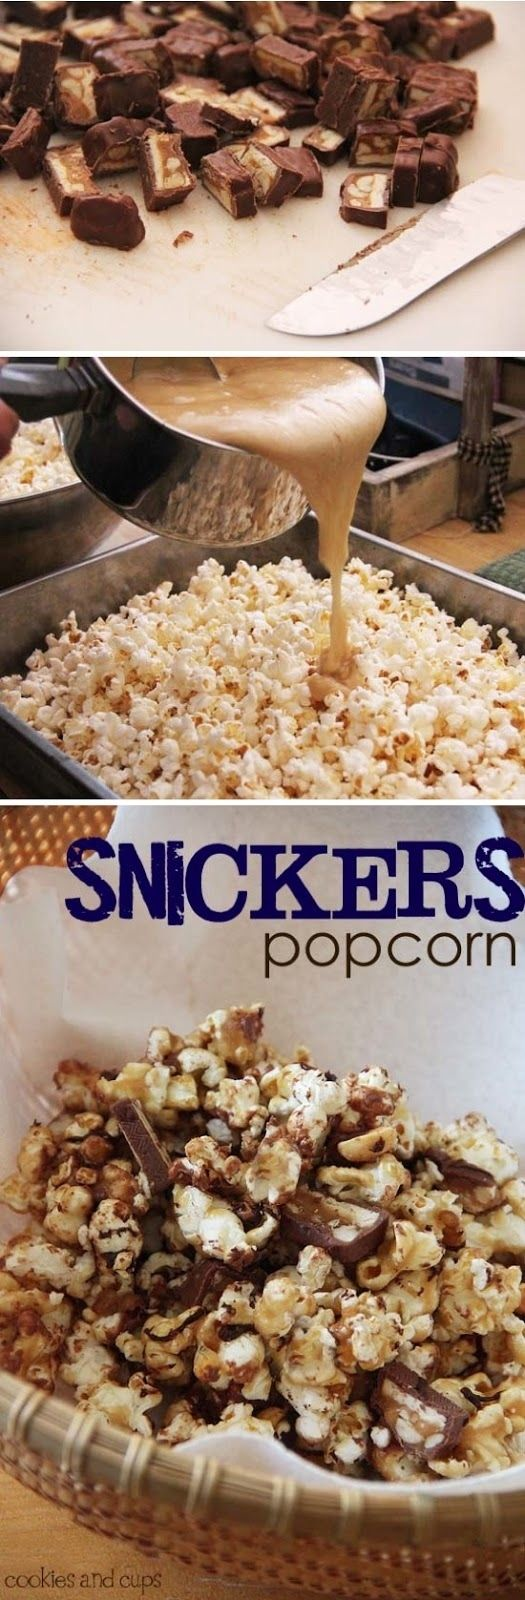 Snickers Popcorn | 20 Perfect Summer Desserts That Will Make You Drool